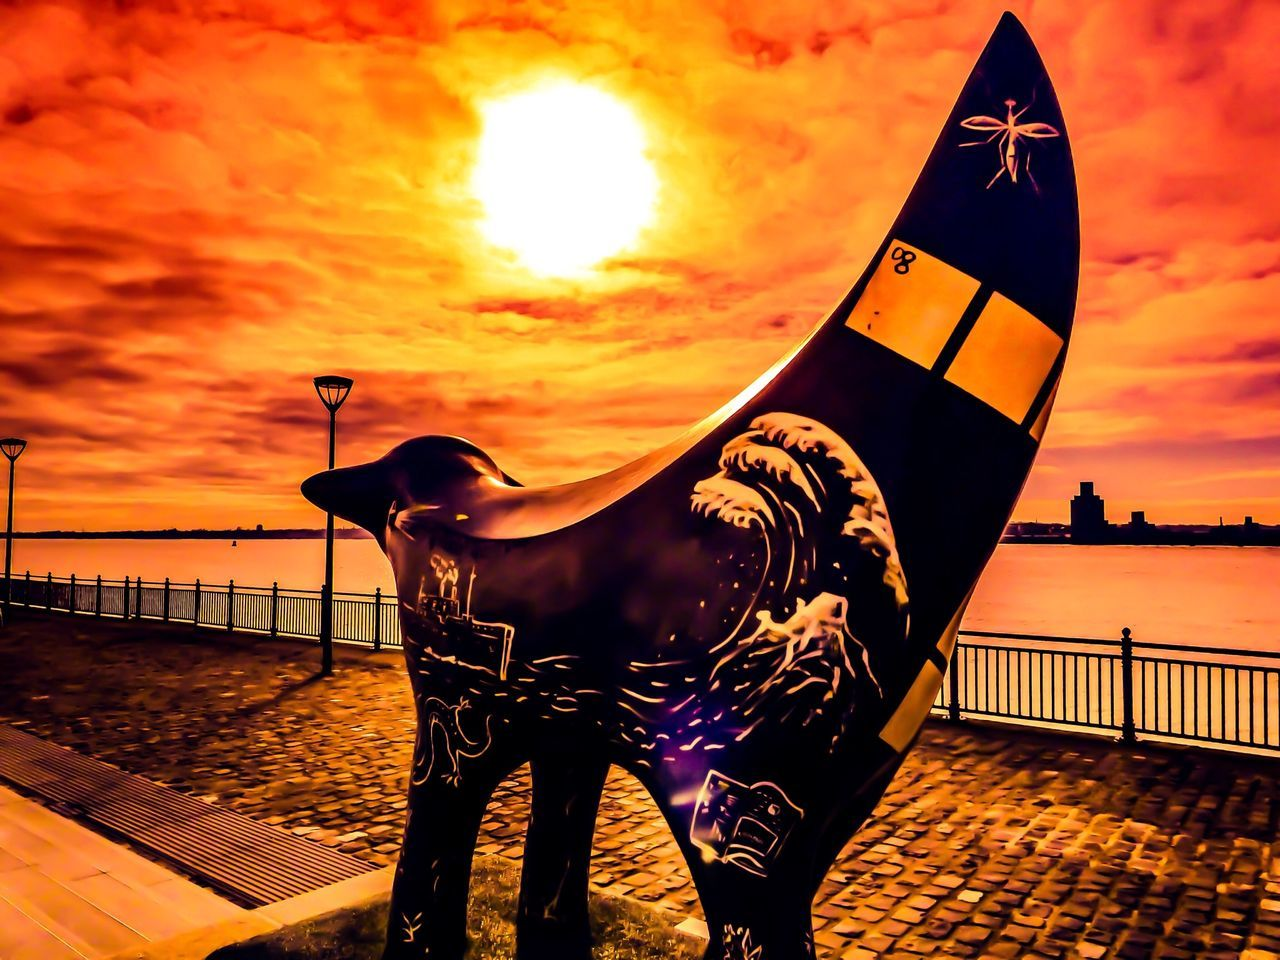 Super Lambanana On Liverpool's Water Front... Red Sunset Over The Mersey...x Sun Sunset Liverpool Merseyside Mersey River Riverside It's Liverpool Itsliverpool Red RedSky Pier Lambanana Superlambanana Super Lambanana Sky Skyporn First Eyeem Photo Albert Dock Marine Showcase: February